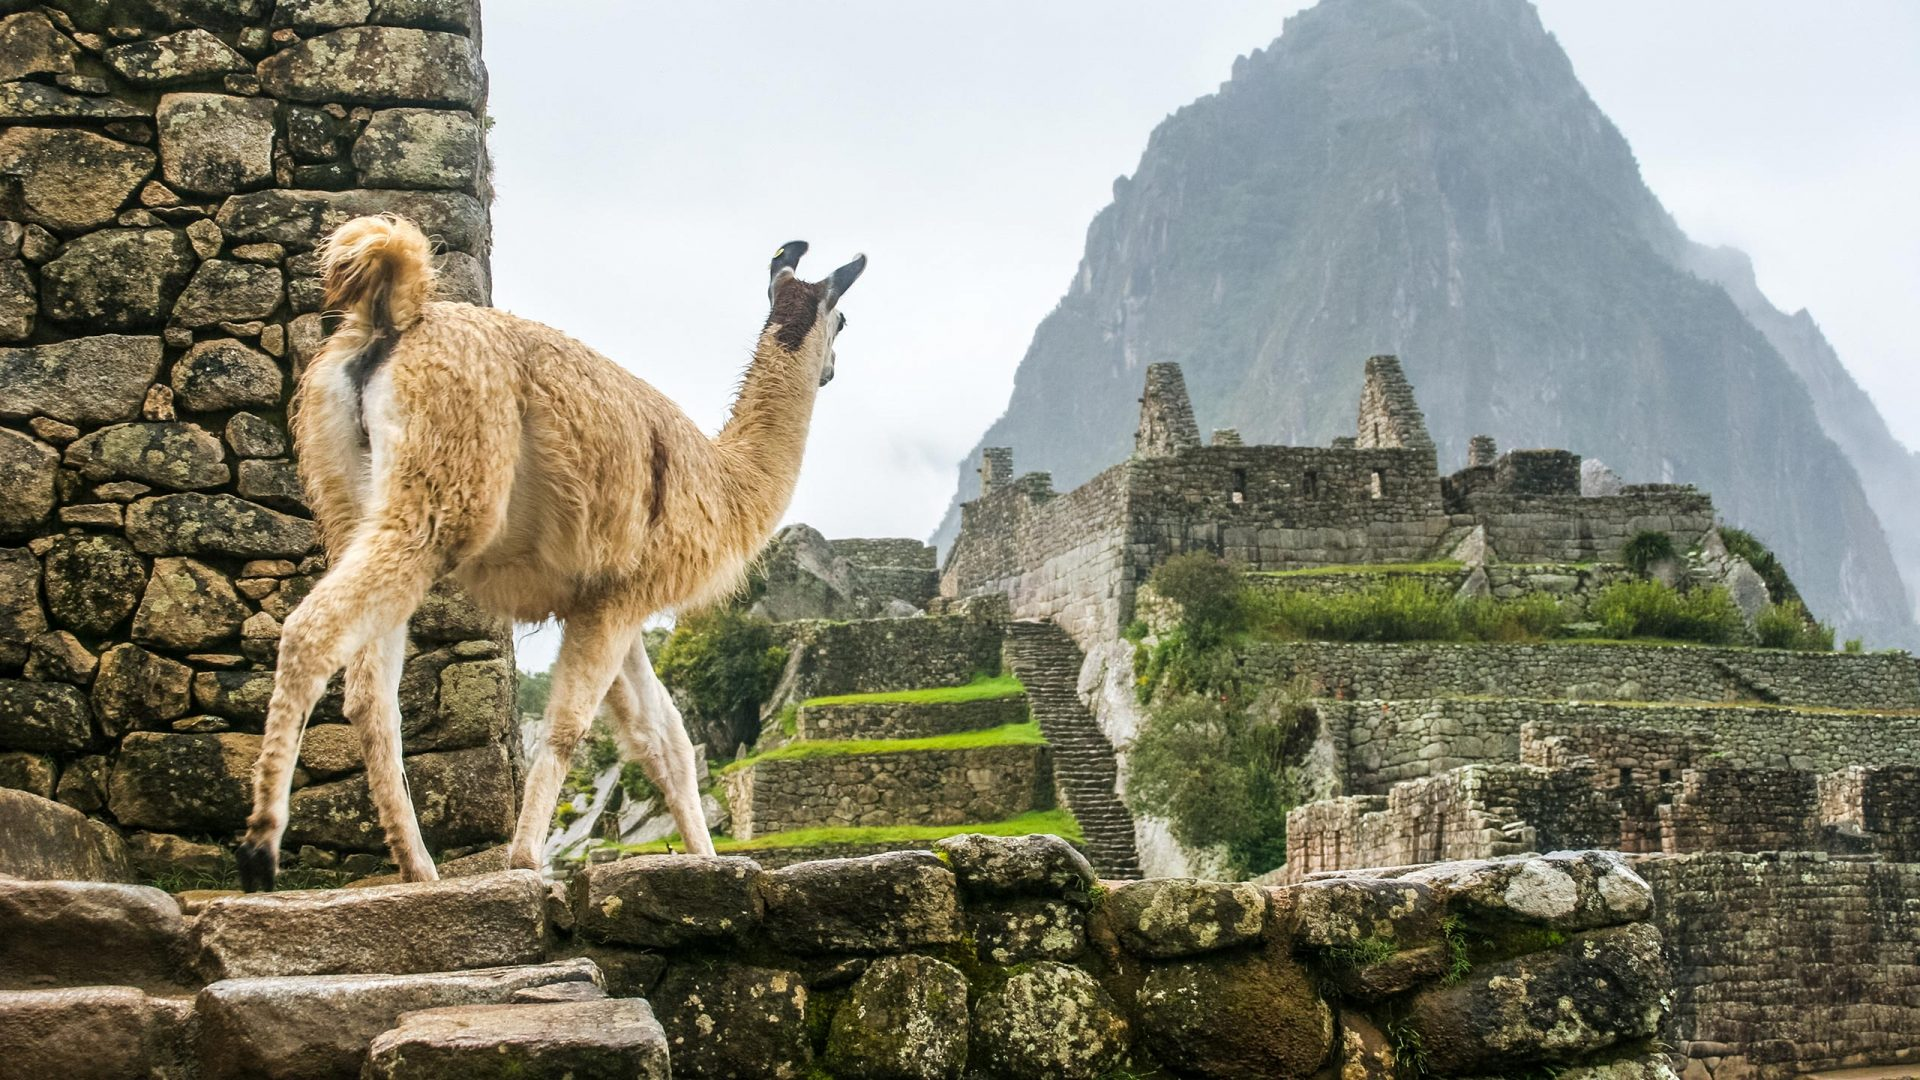 Machu Picchu Amp Galapagos Islands Tour Two Of South